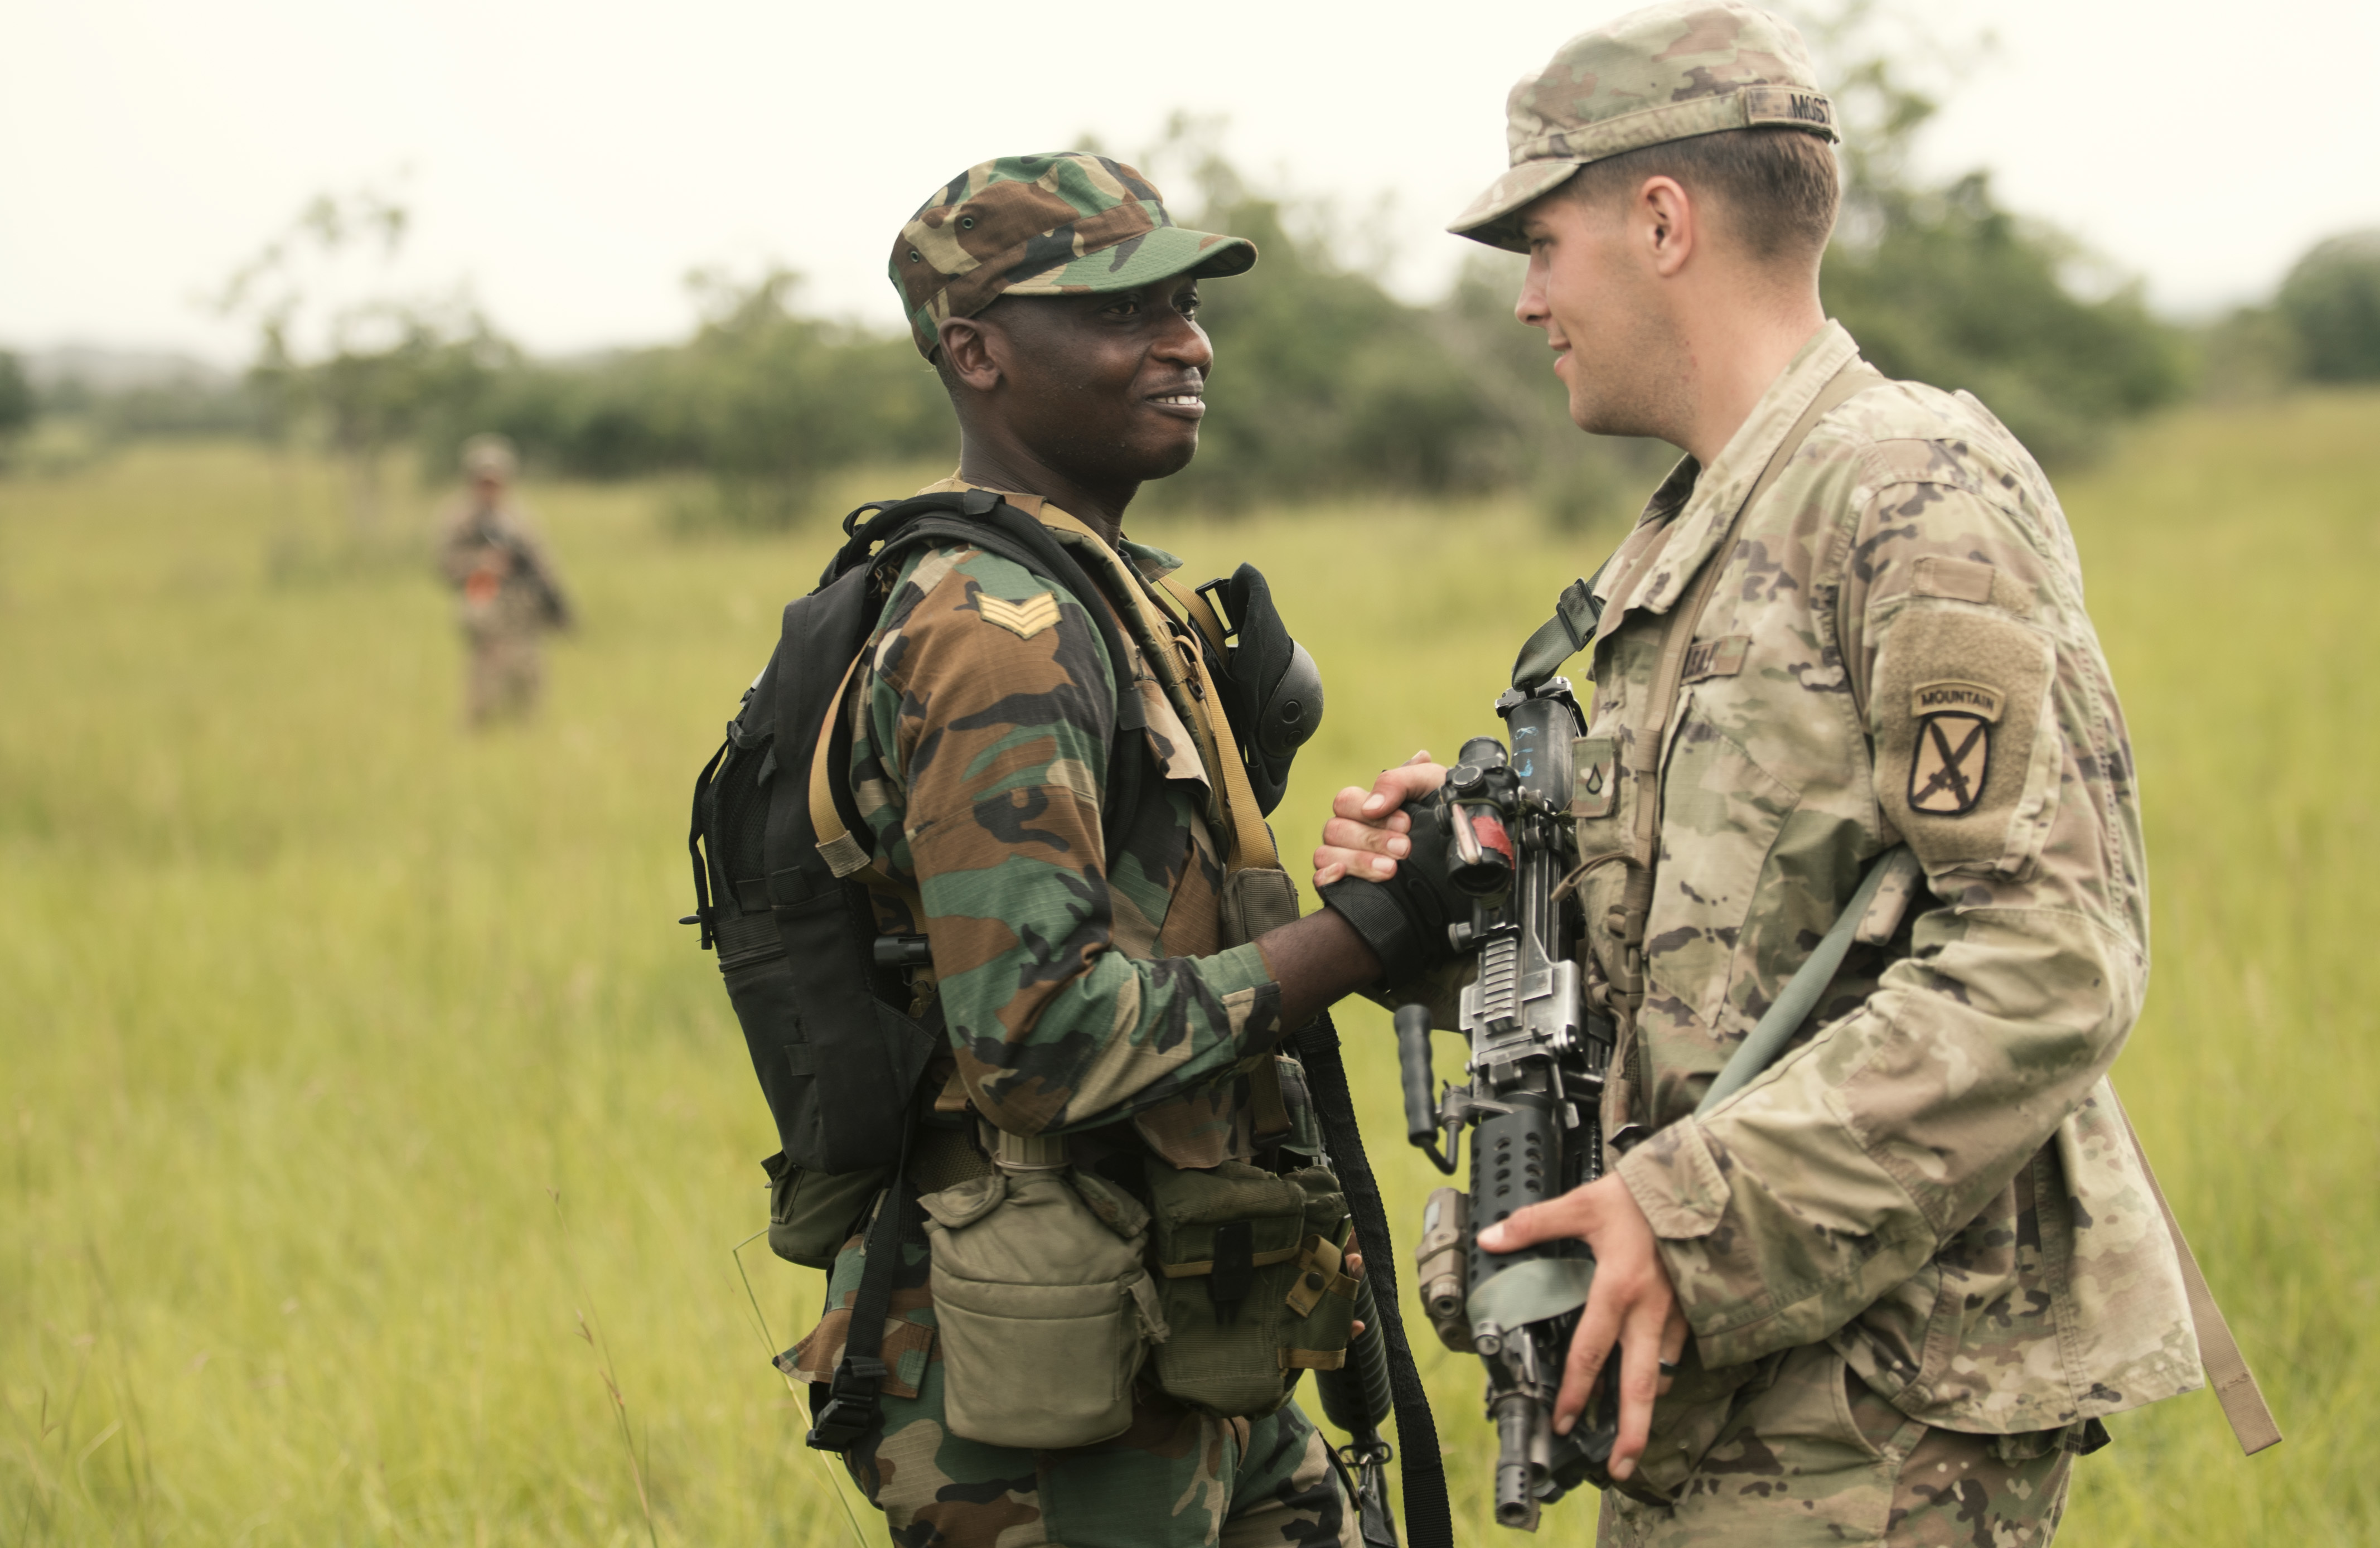 A soldier with the Ghana Armed Forces and a Soldier with U.S. Army's 1-32 Infantry Regiment, 1st Brigade Combat Team, 10th Mountain Division greet each other during a field training exercise as part of United Accord 2018 at the Bundase Training Camp, Ghana July 16, 2018. United Accord 2018 is a Ghana Armed Forces & U.S. Army Africa hosted exercise consisting of four combined, joint components: a computer-programmed exercise (CPX), field training exercise (FTX), Jungle Warfare School (JWS) and medical readiness training exercise (MEDRETE) (U.S. Navy Photo by MC2 Douglas Parker)